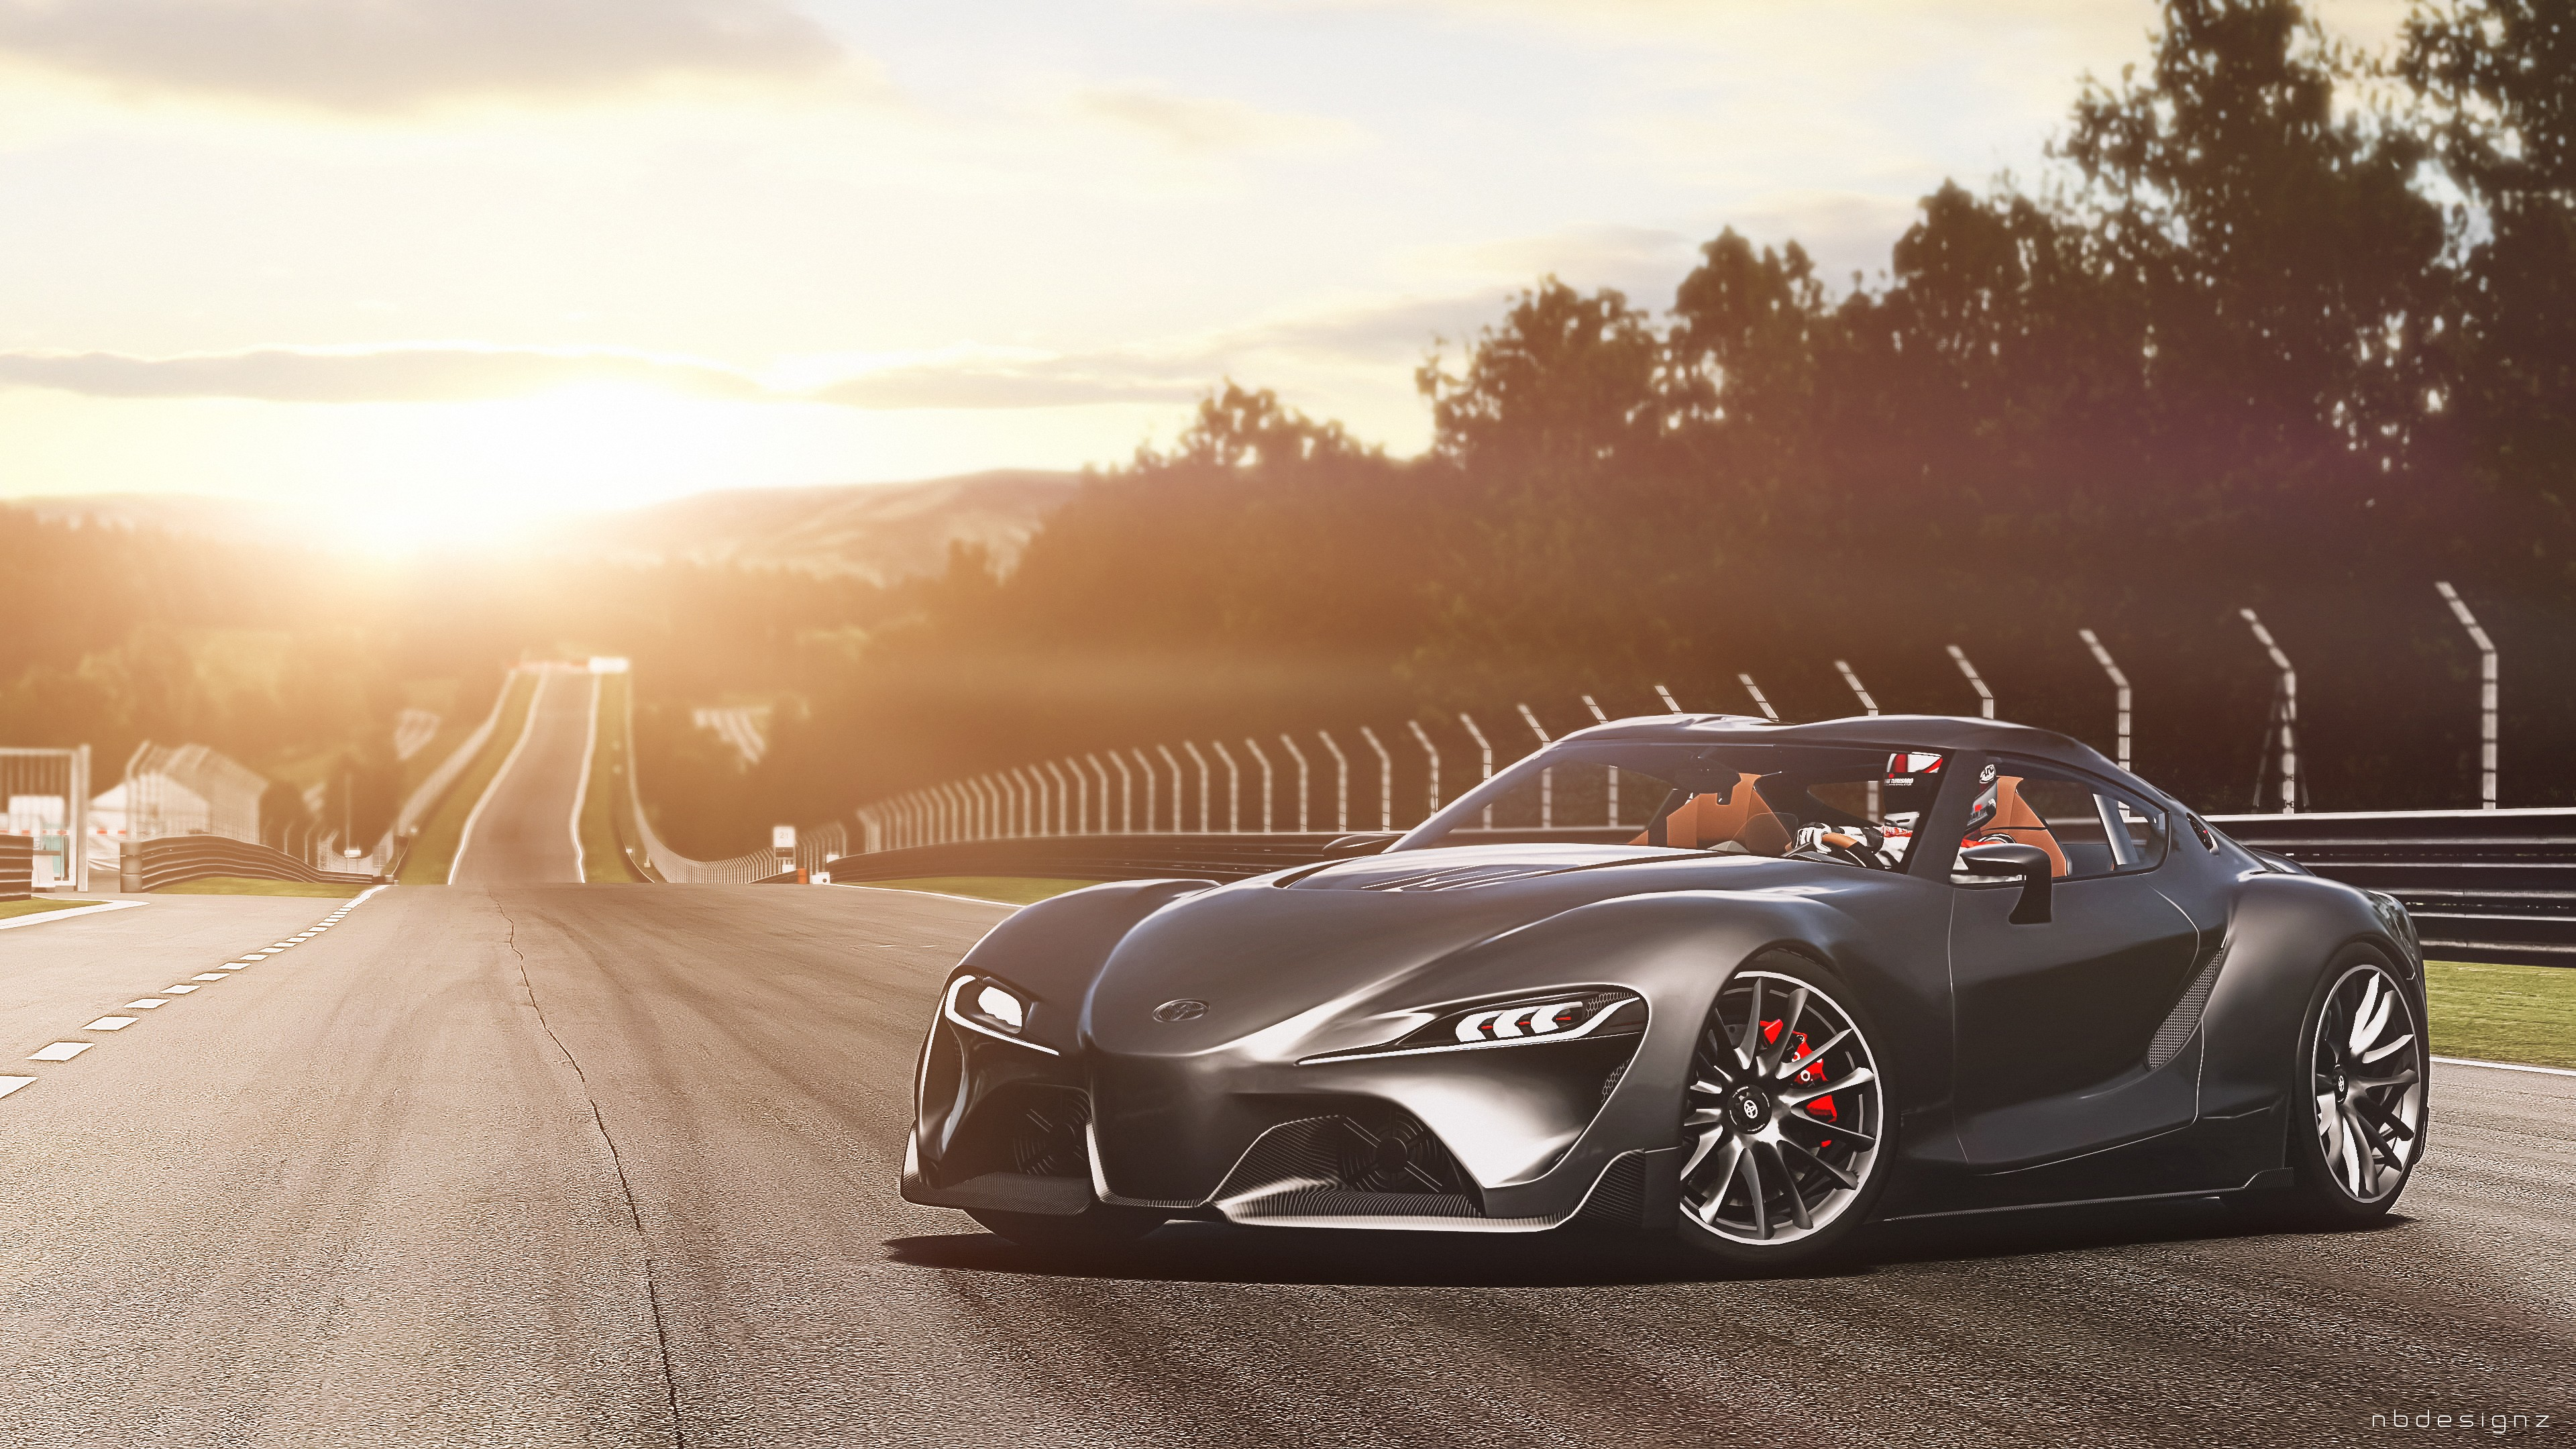 Wallpaper Toyota FT-1, hypercar, supercar, Cars & Bikes #11117